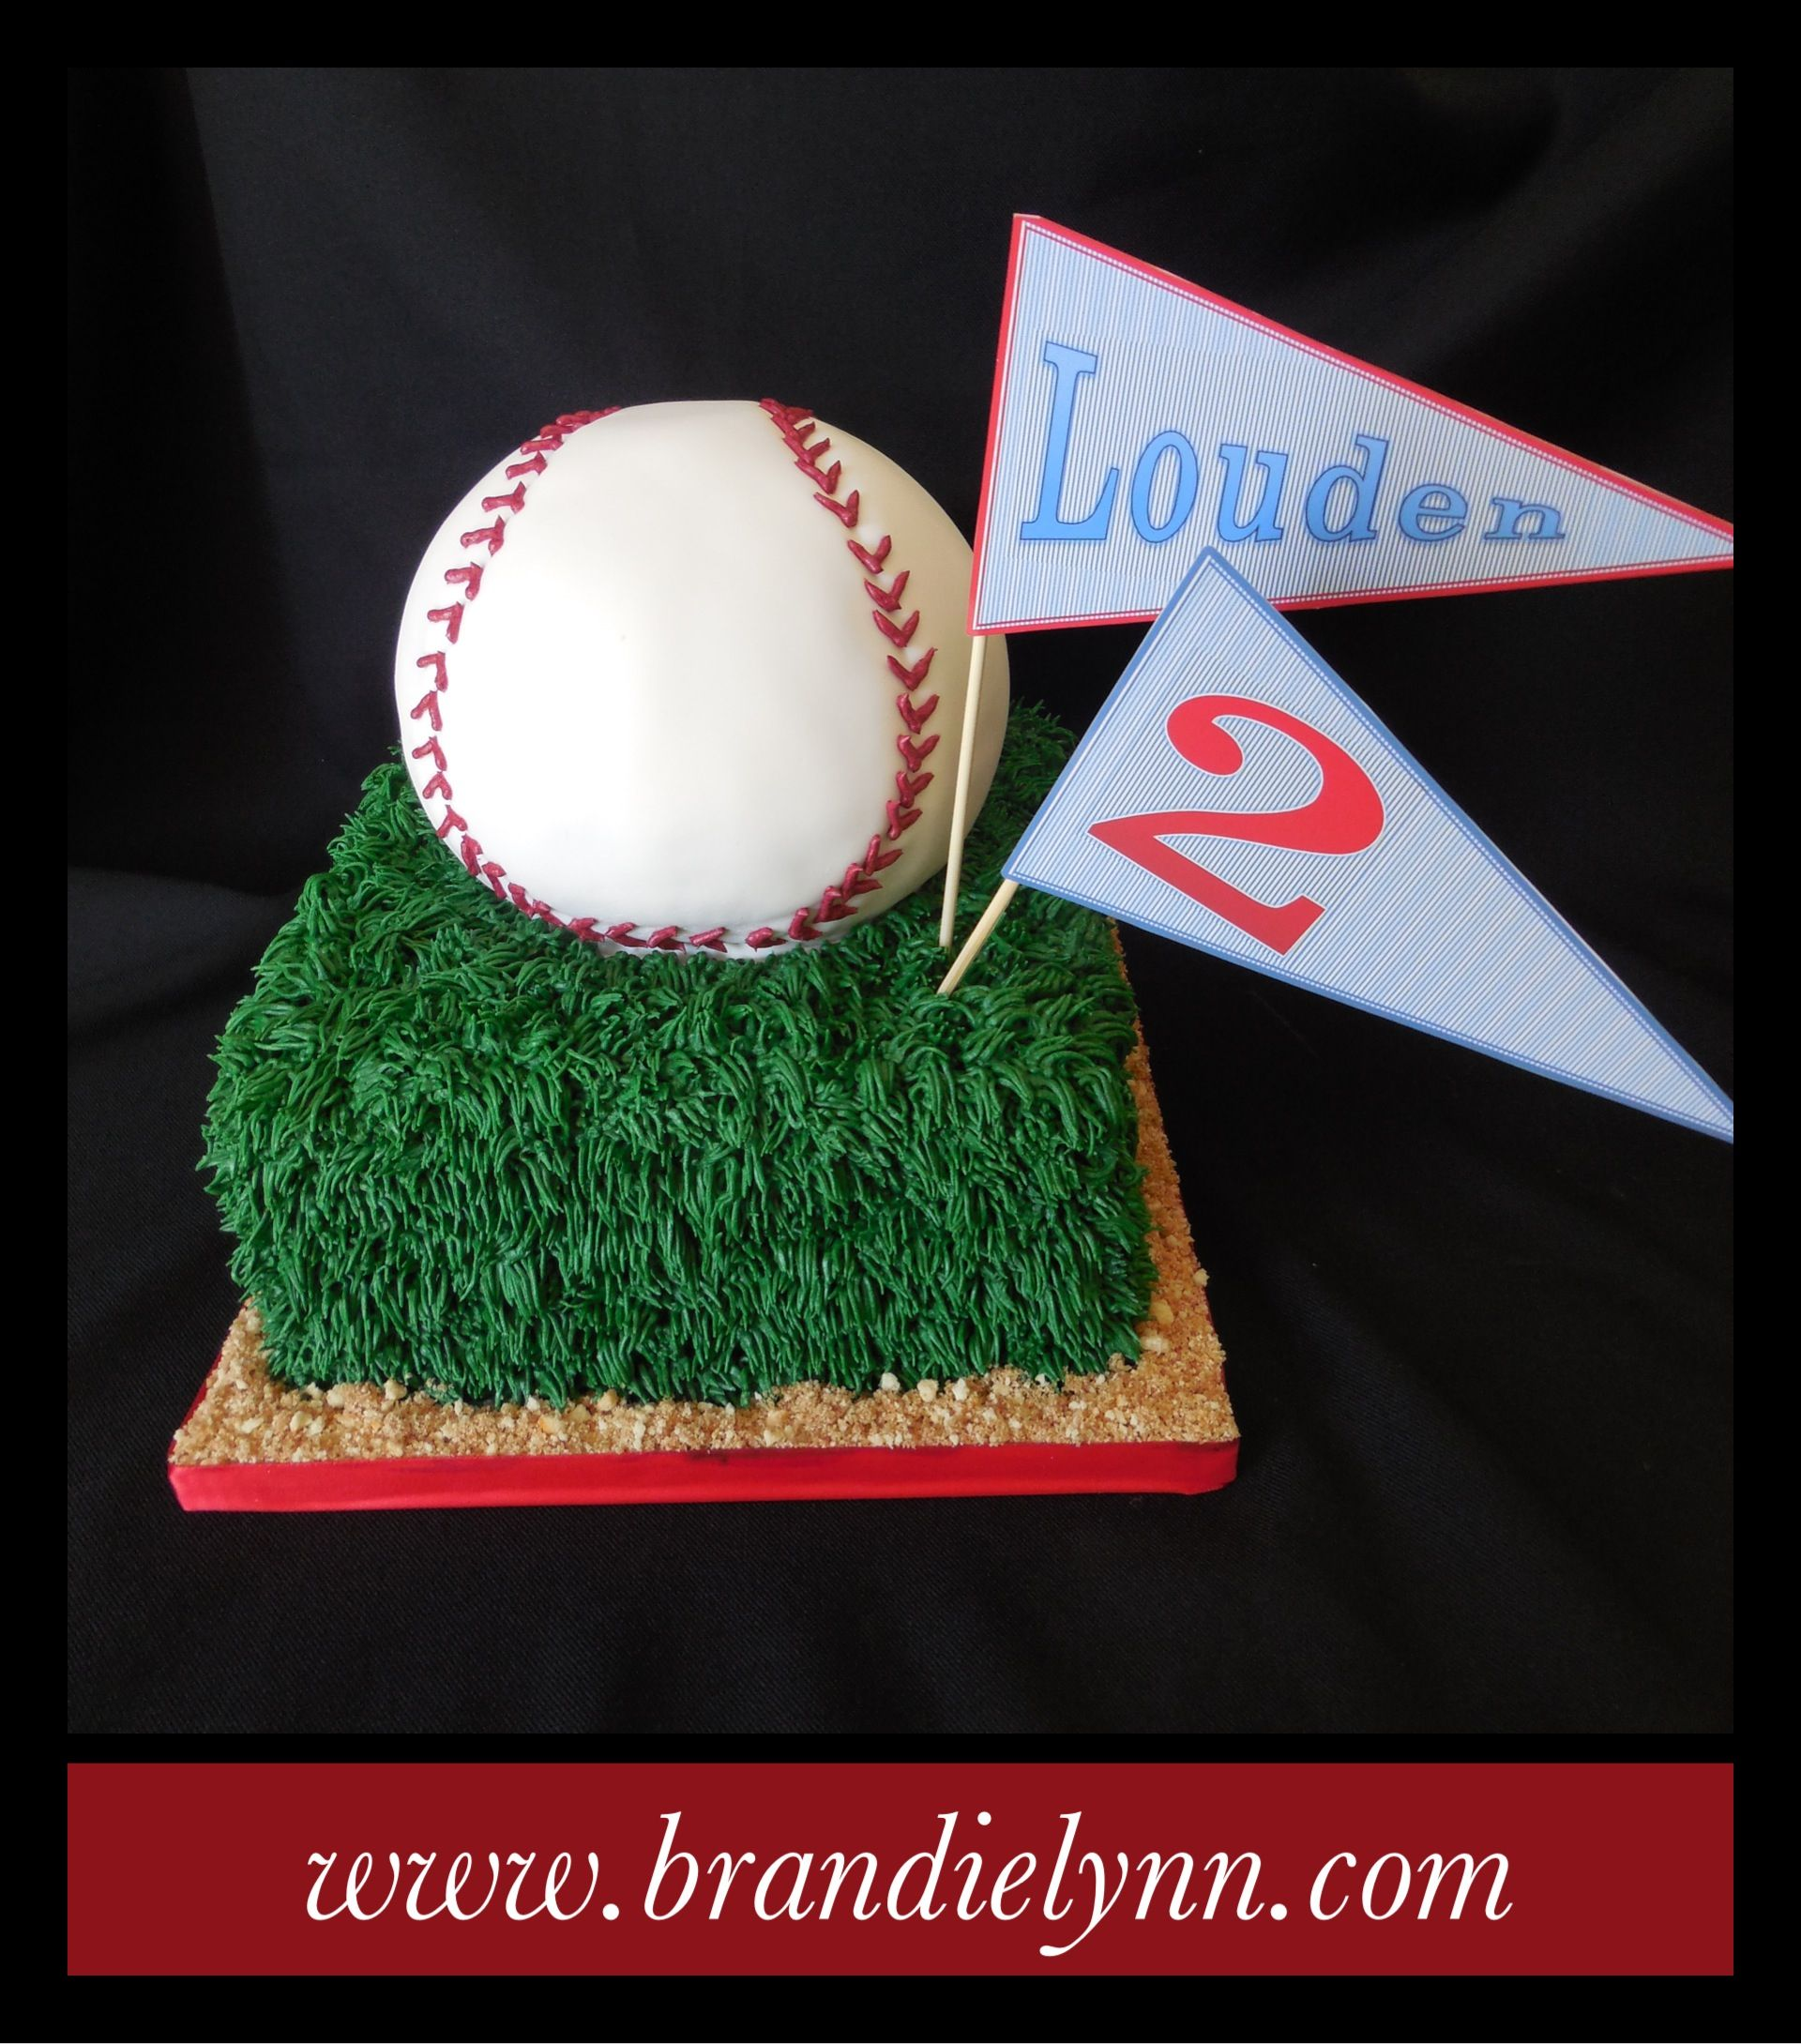 Baseball cake possible 8th birthday cake to coordinate with new big